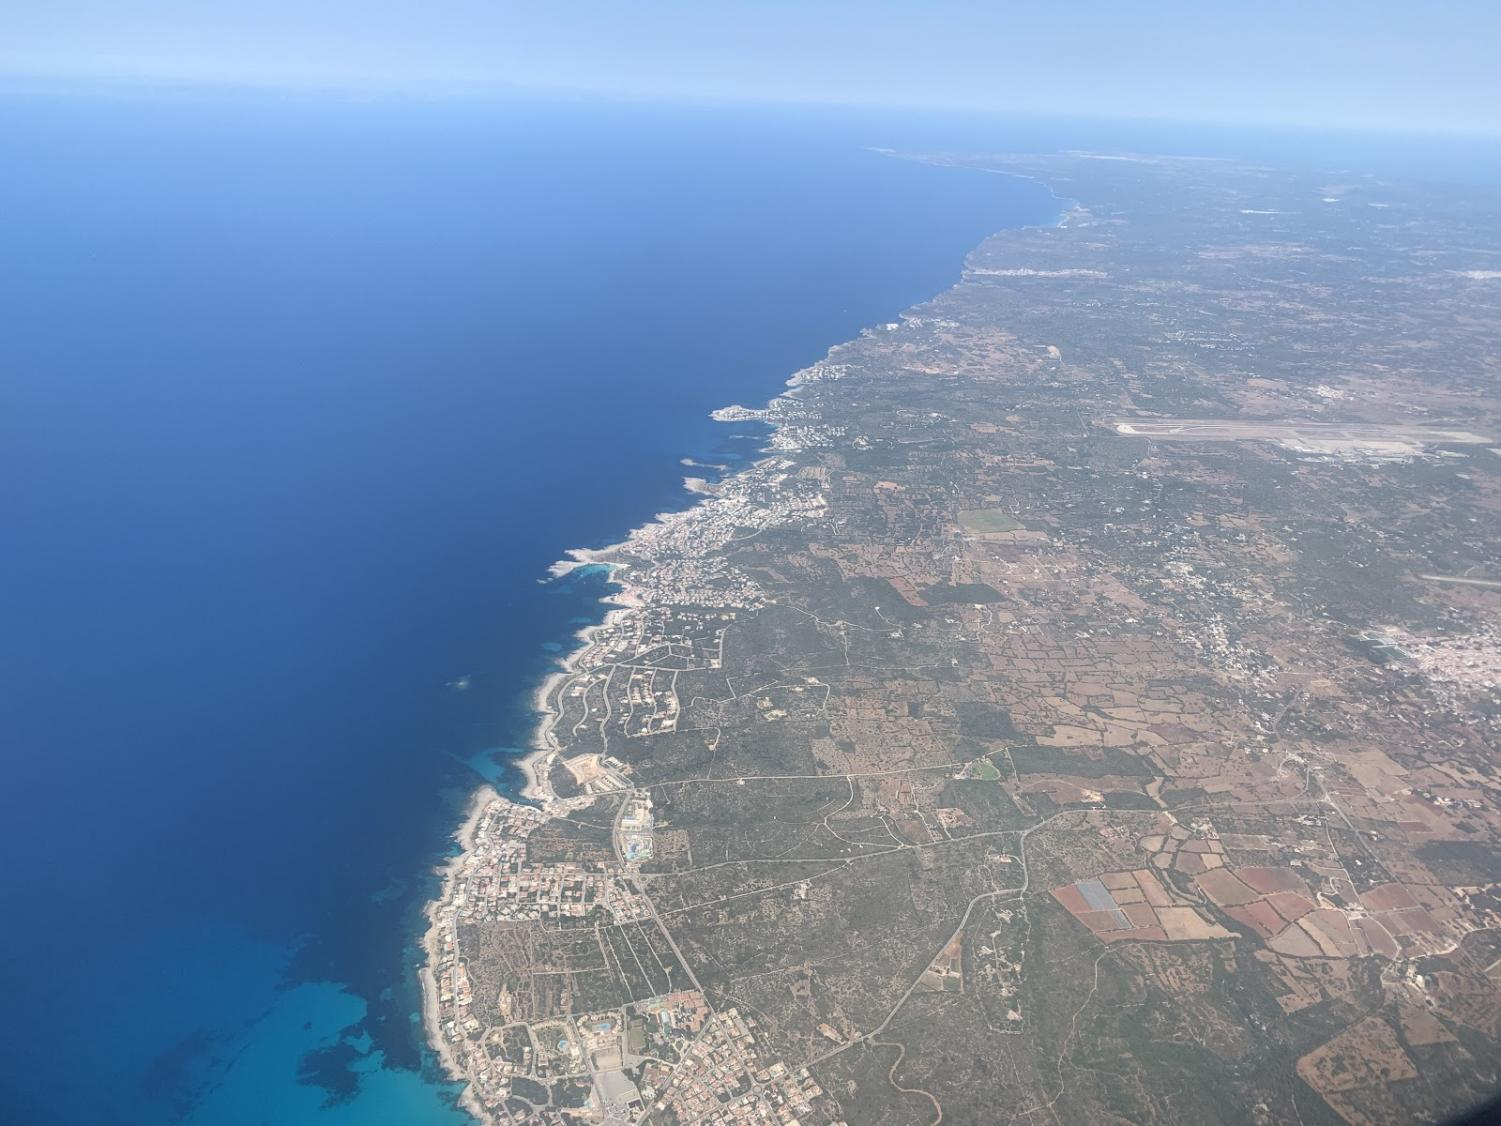 A view of coastal Spain from an airplane